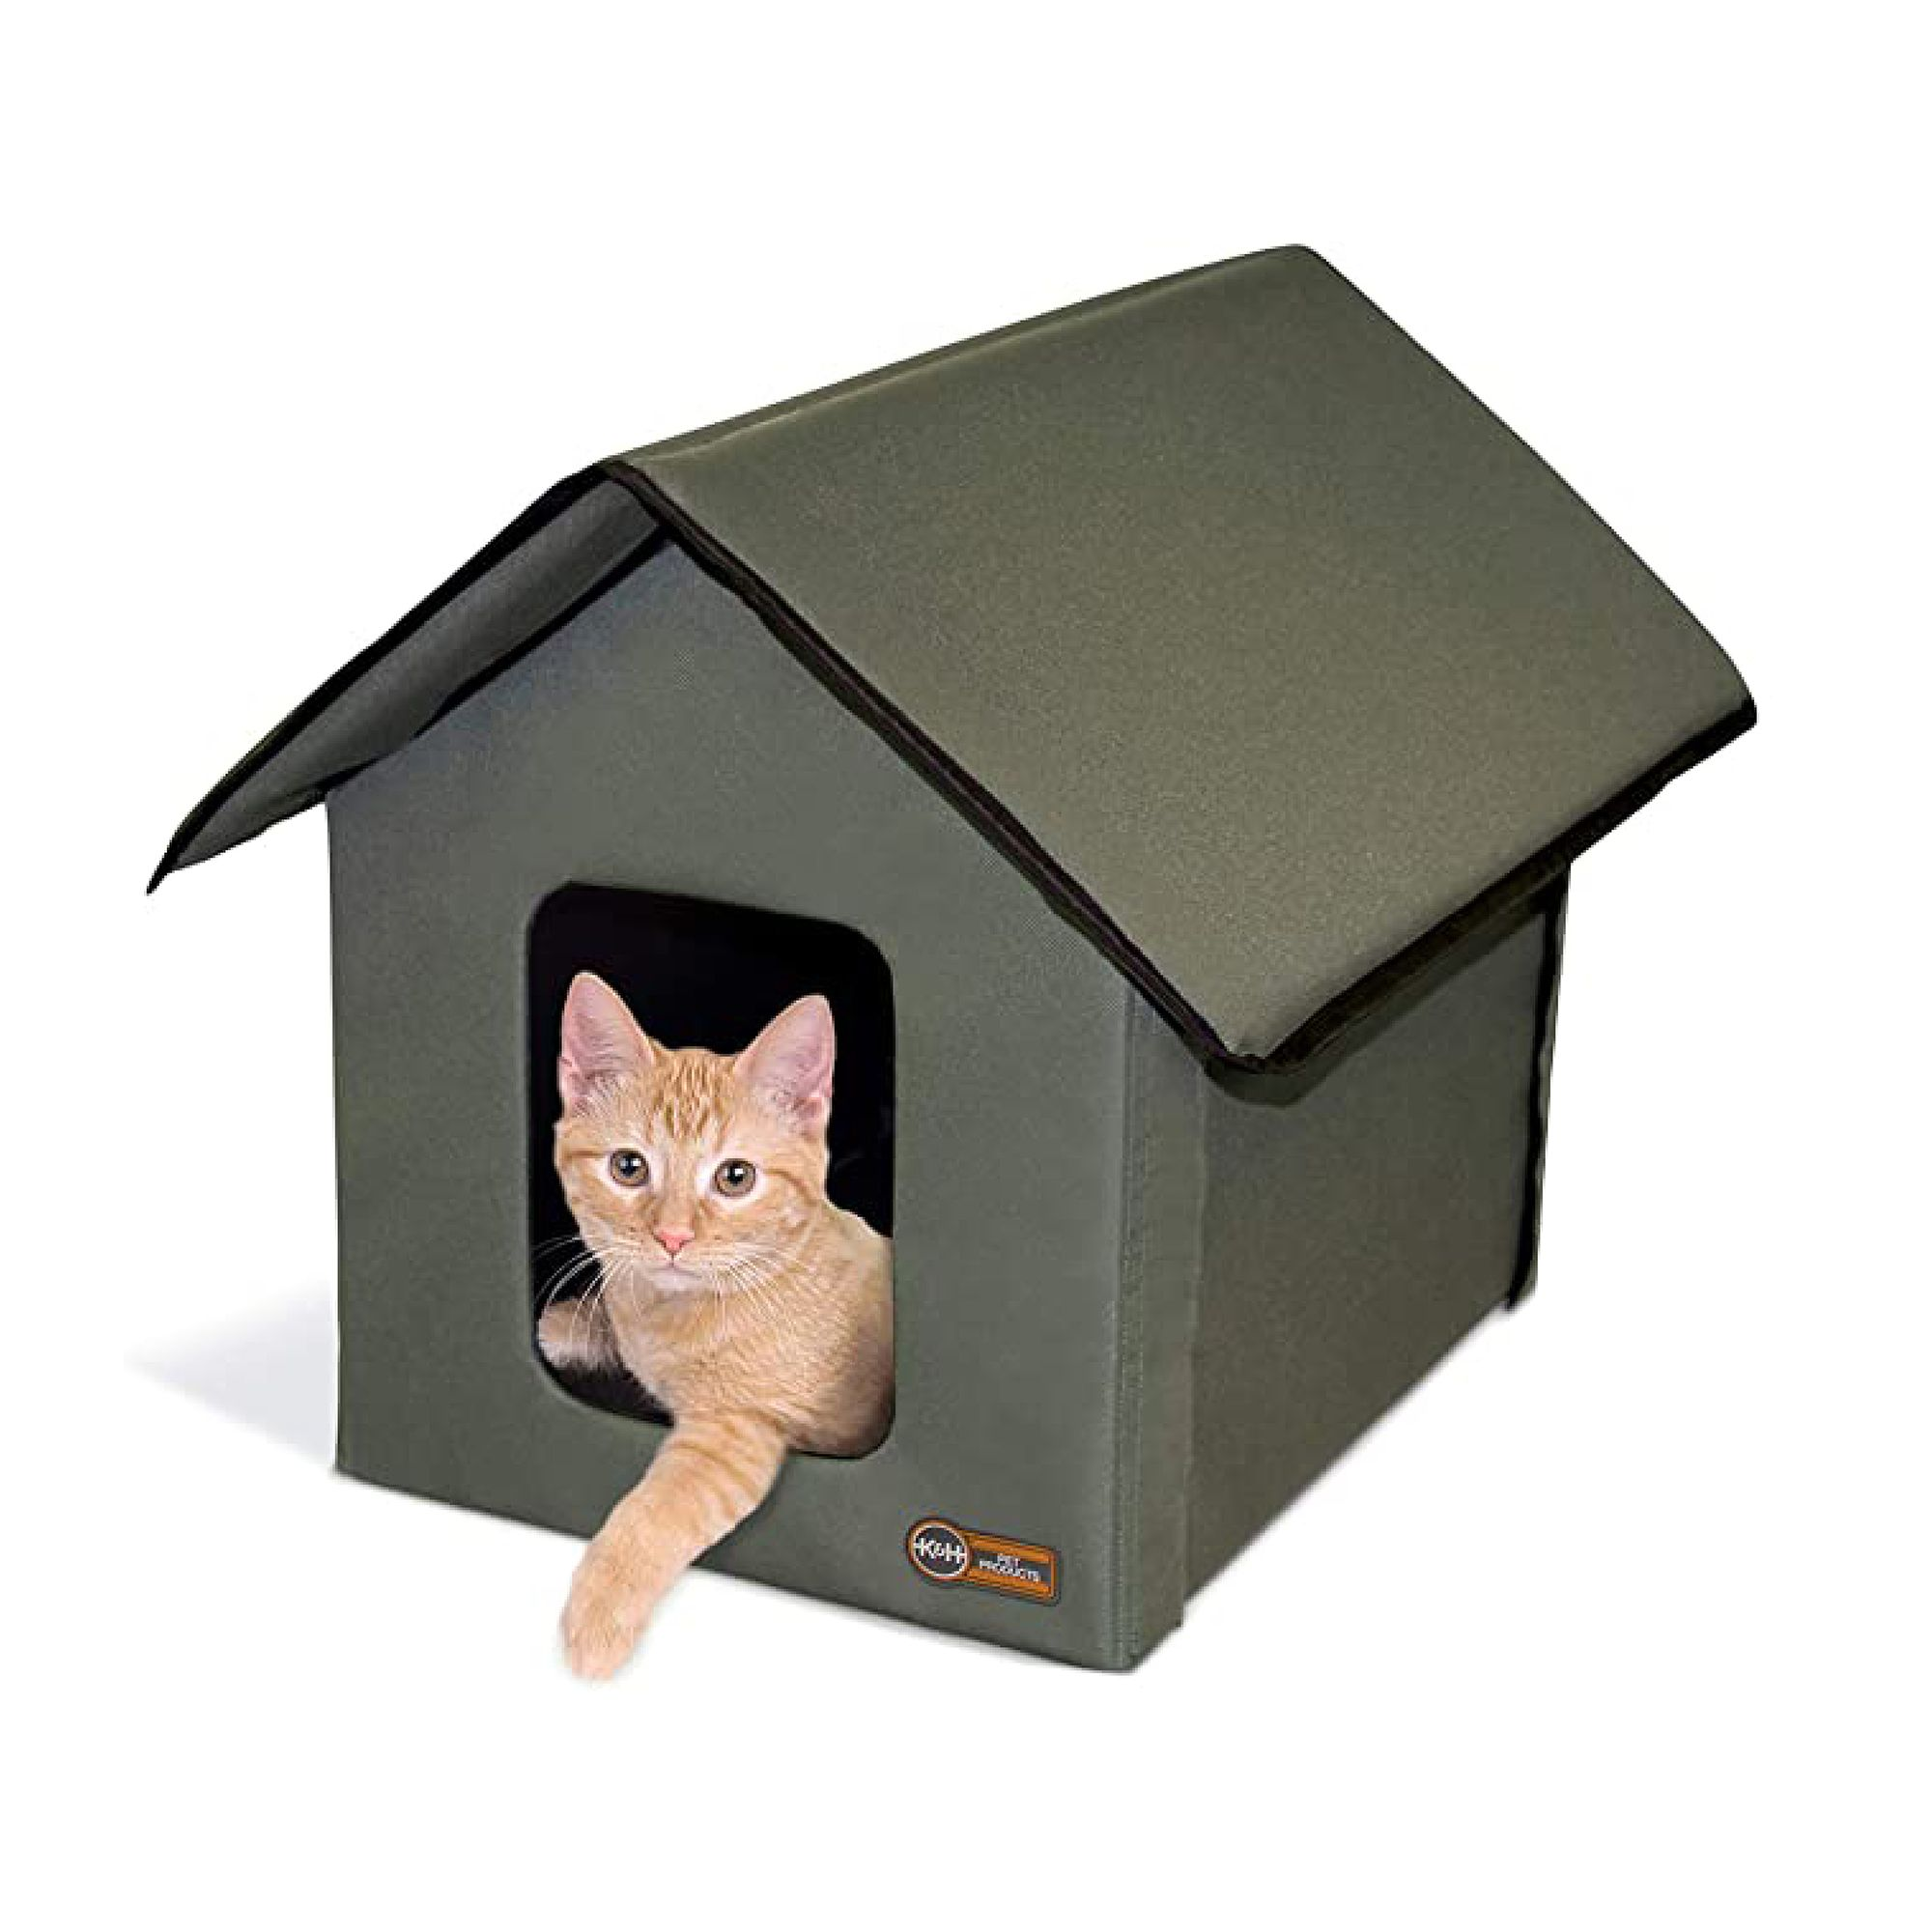 K & H Pet Products Outdoor Kitty House